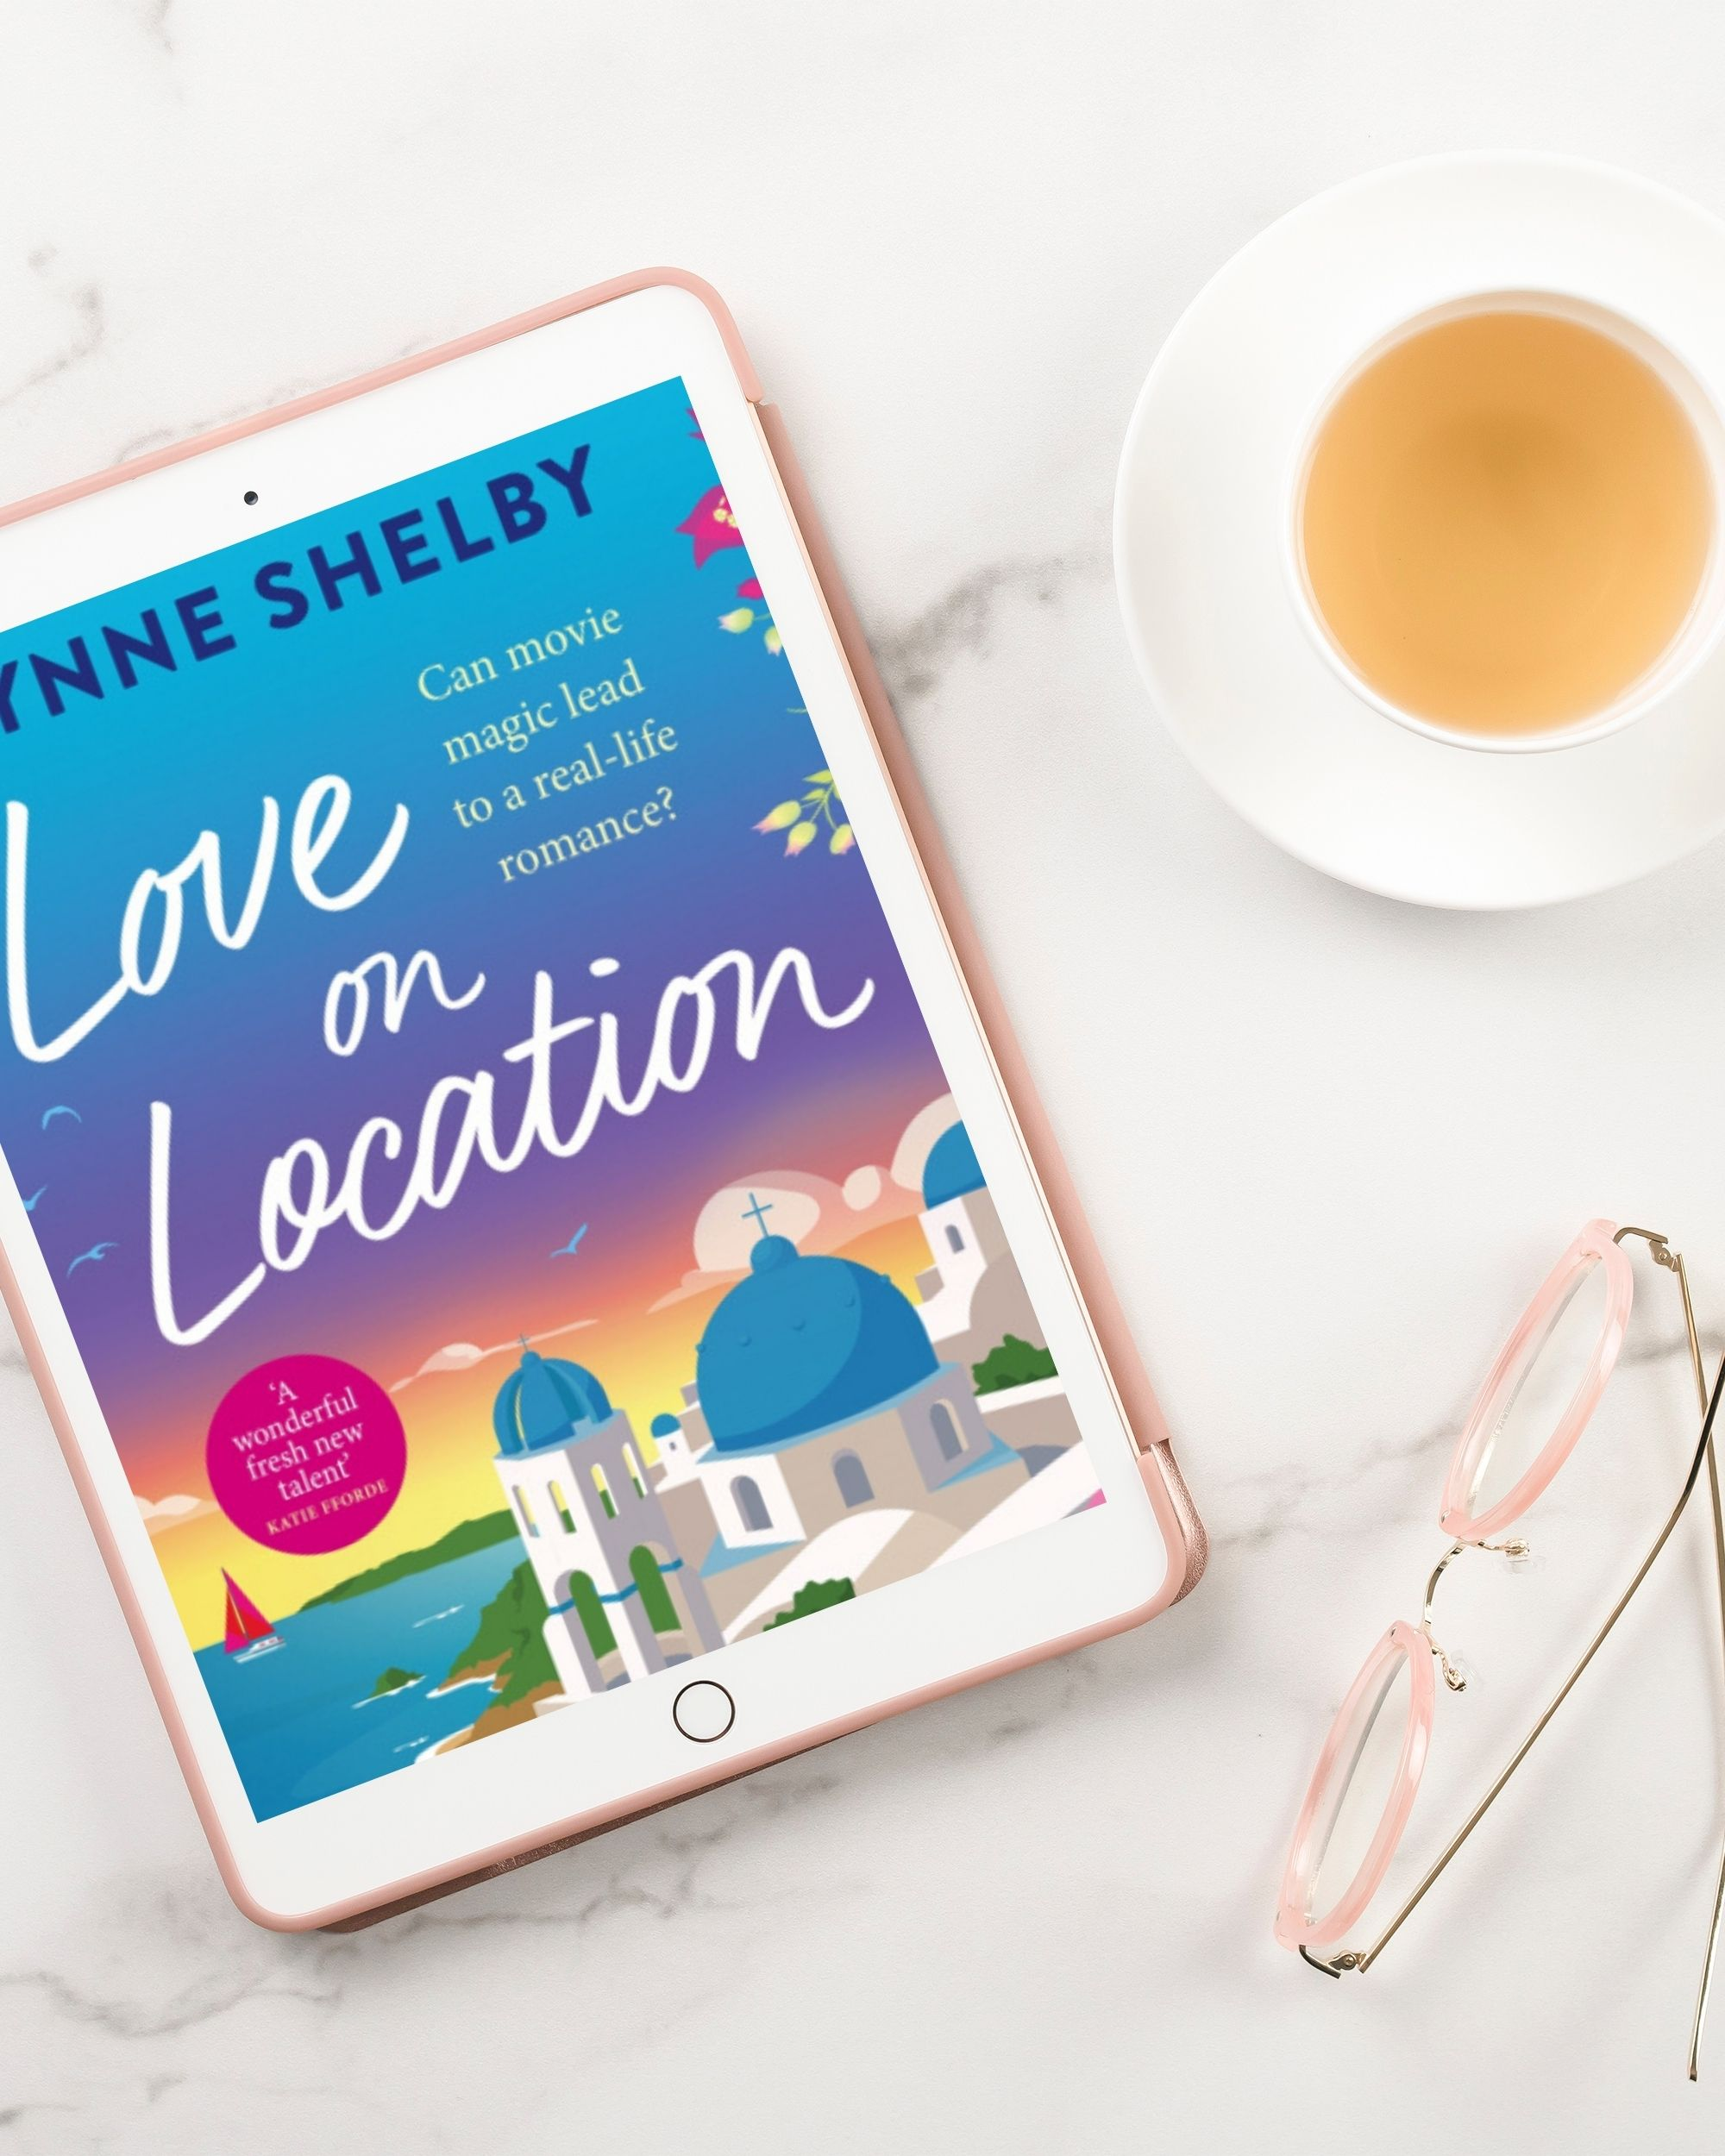 Love on Location by Lynne Shelby Review - Wickedly Romance